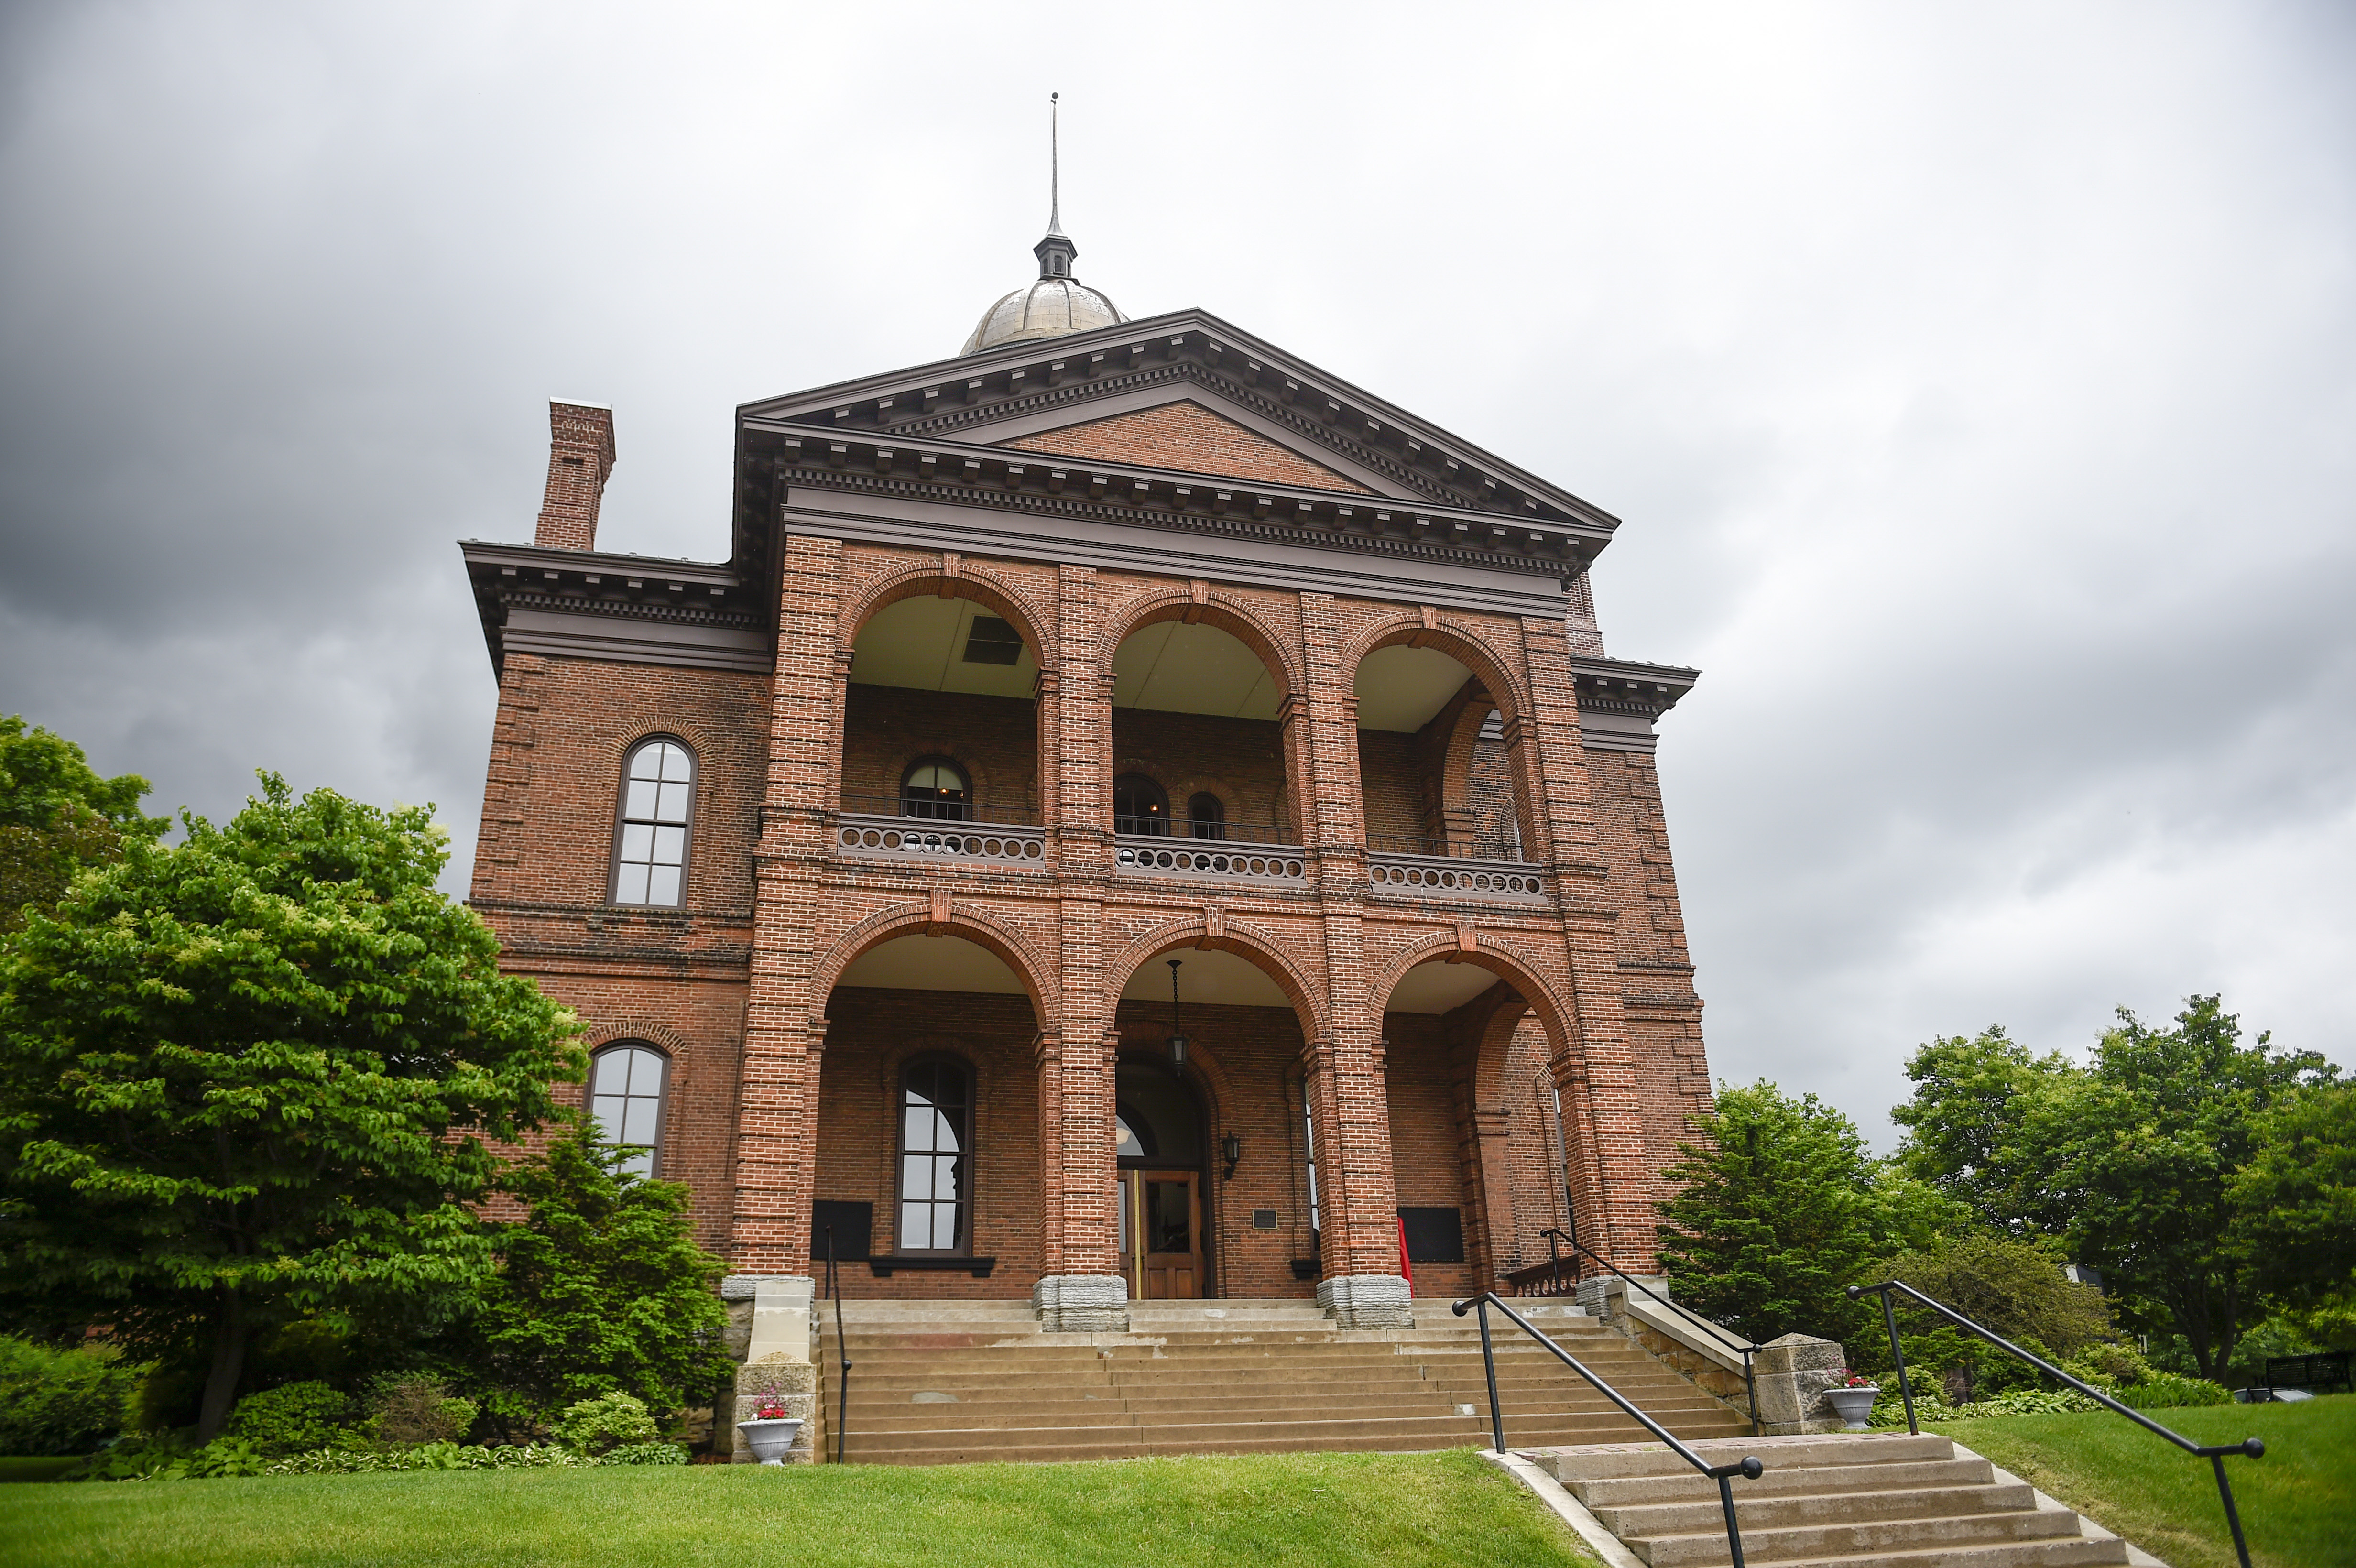 Construction of the Washington County Historic Courthouse began in 1867 and was completed in 1870.